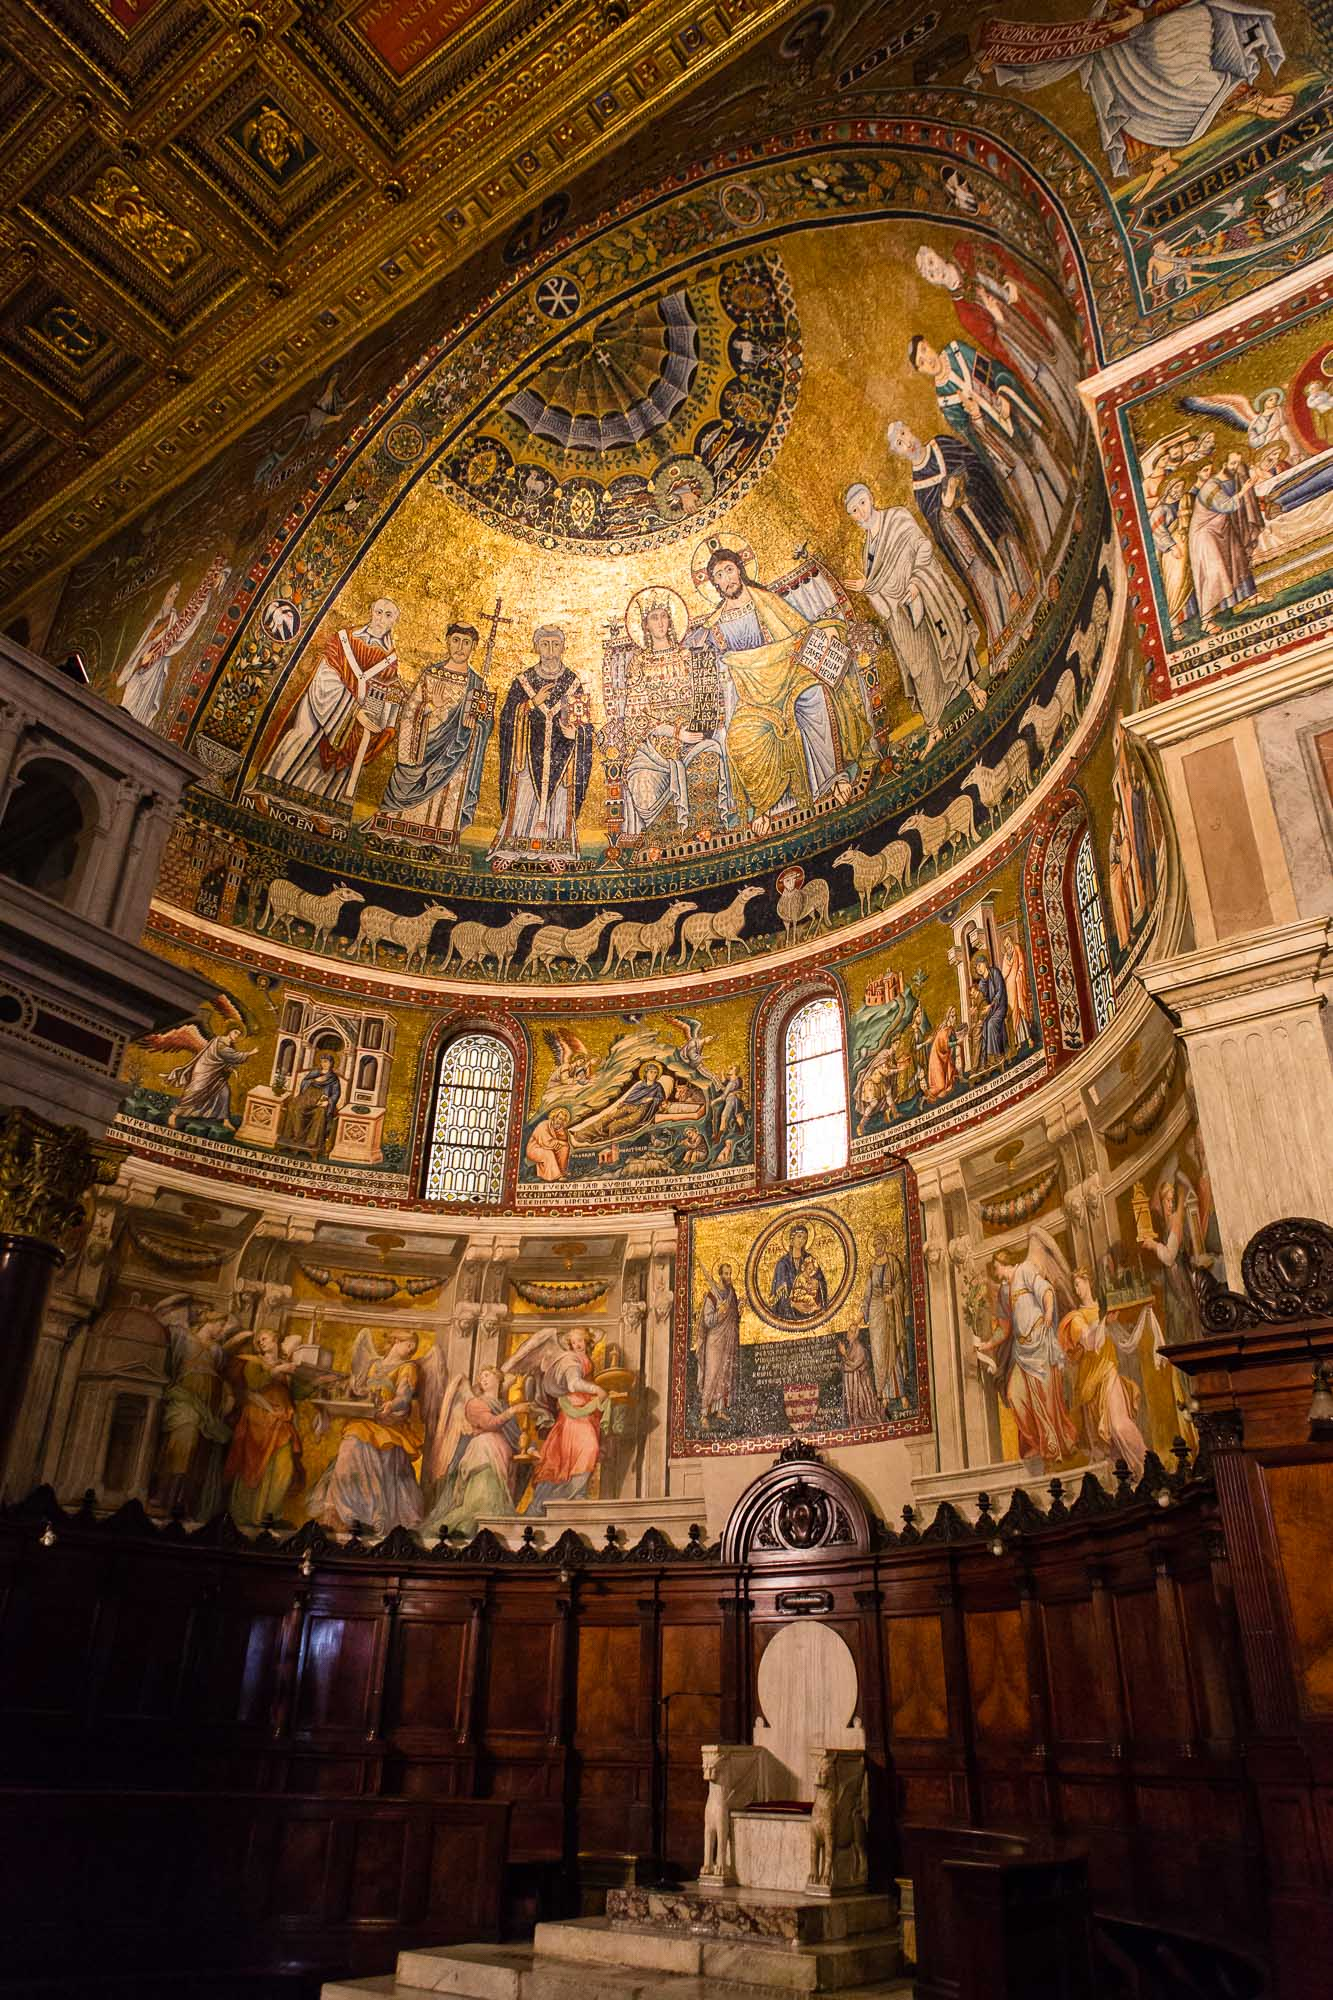 Church interior taken by Ben Lee, a derbyshire based photographer on his trip to Rome.